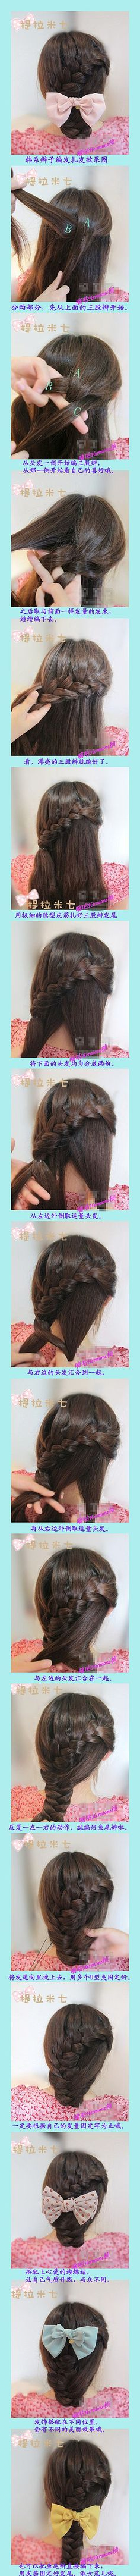 double braided hair...it's cute without the ugly bows